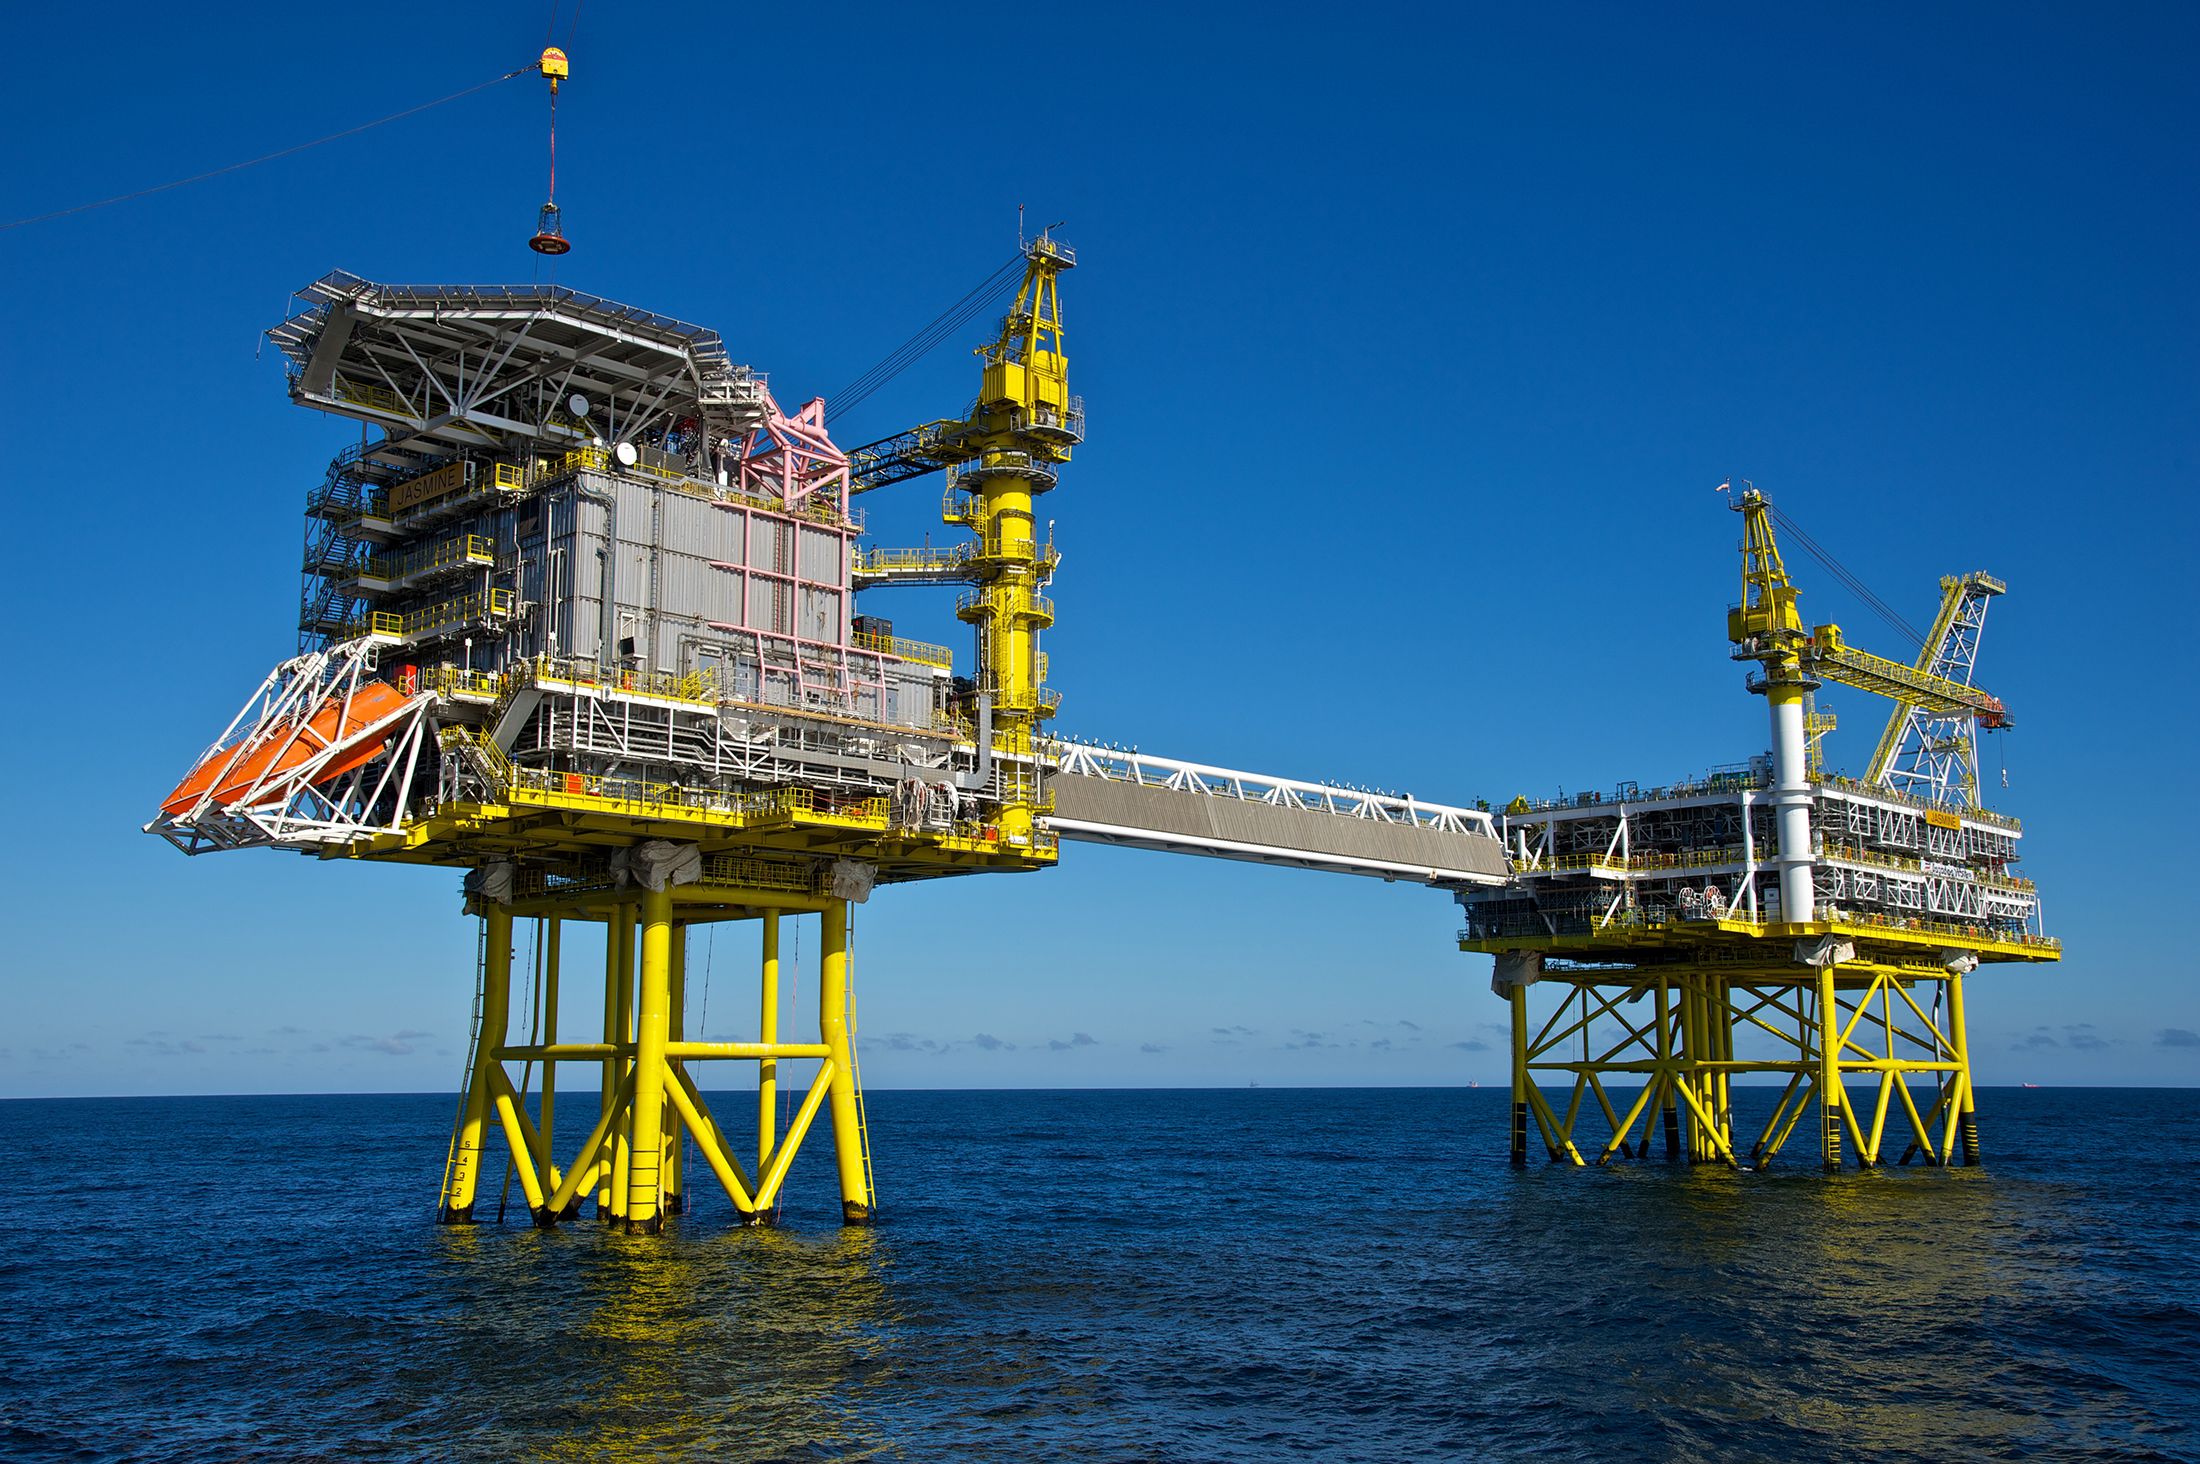 A file photo of a North Sea oil platform